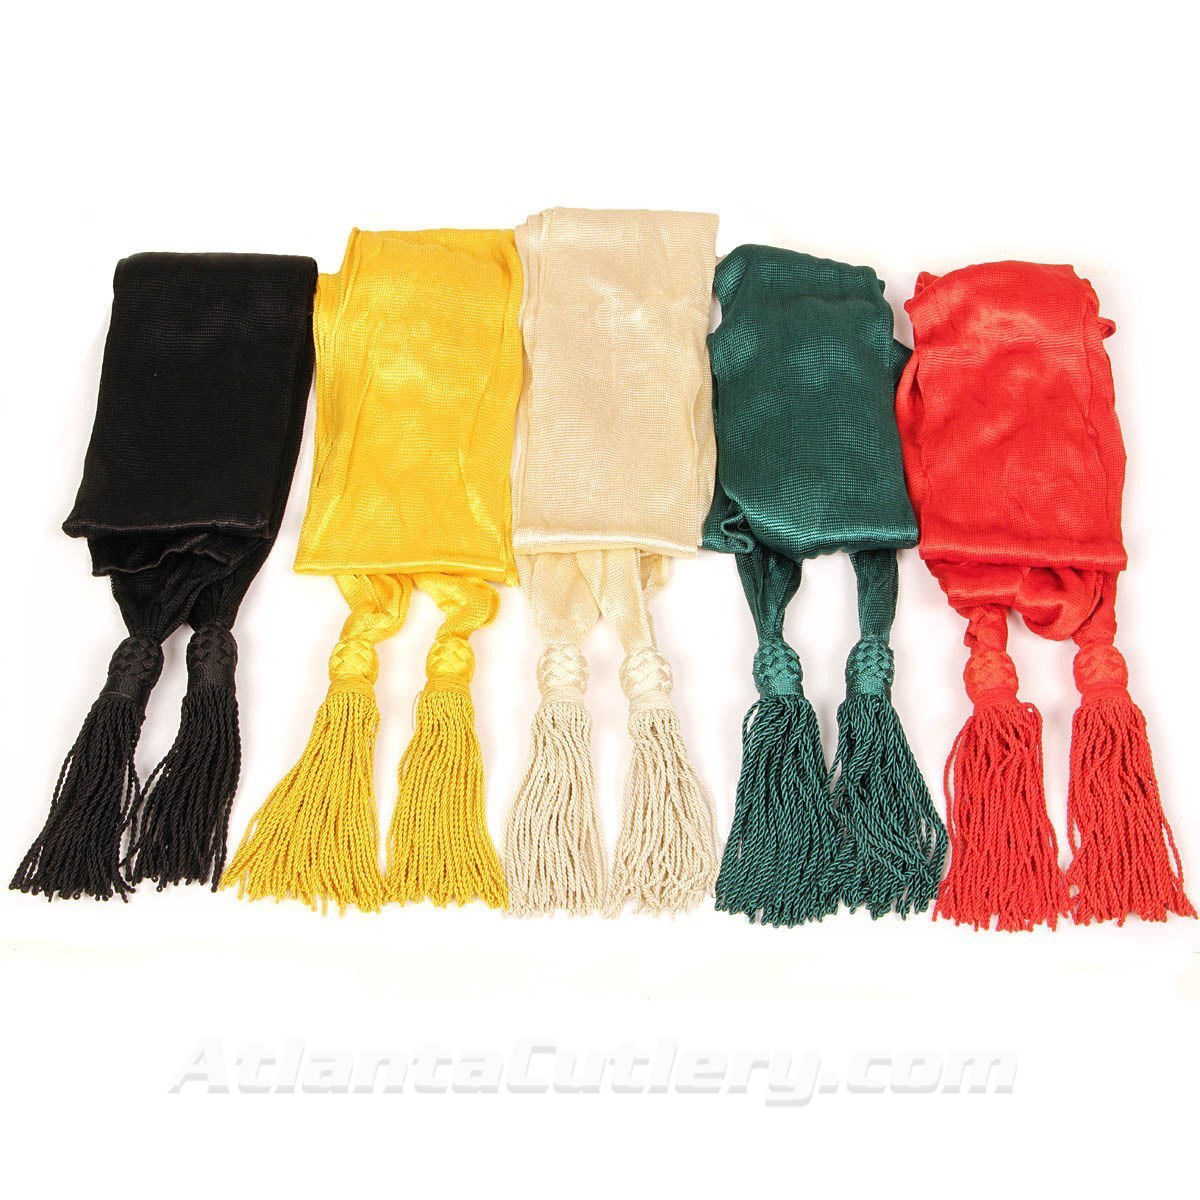 Officer's Silk Sash - Tassels